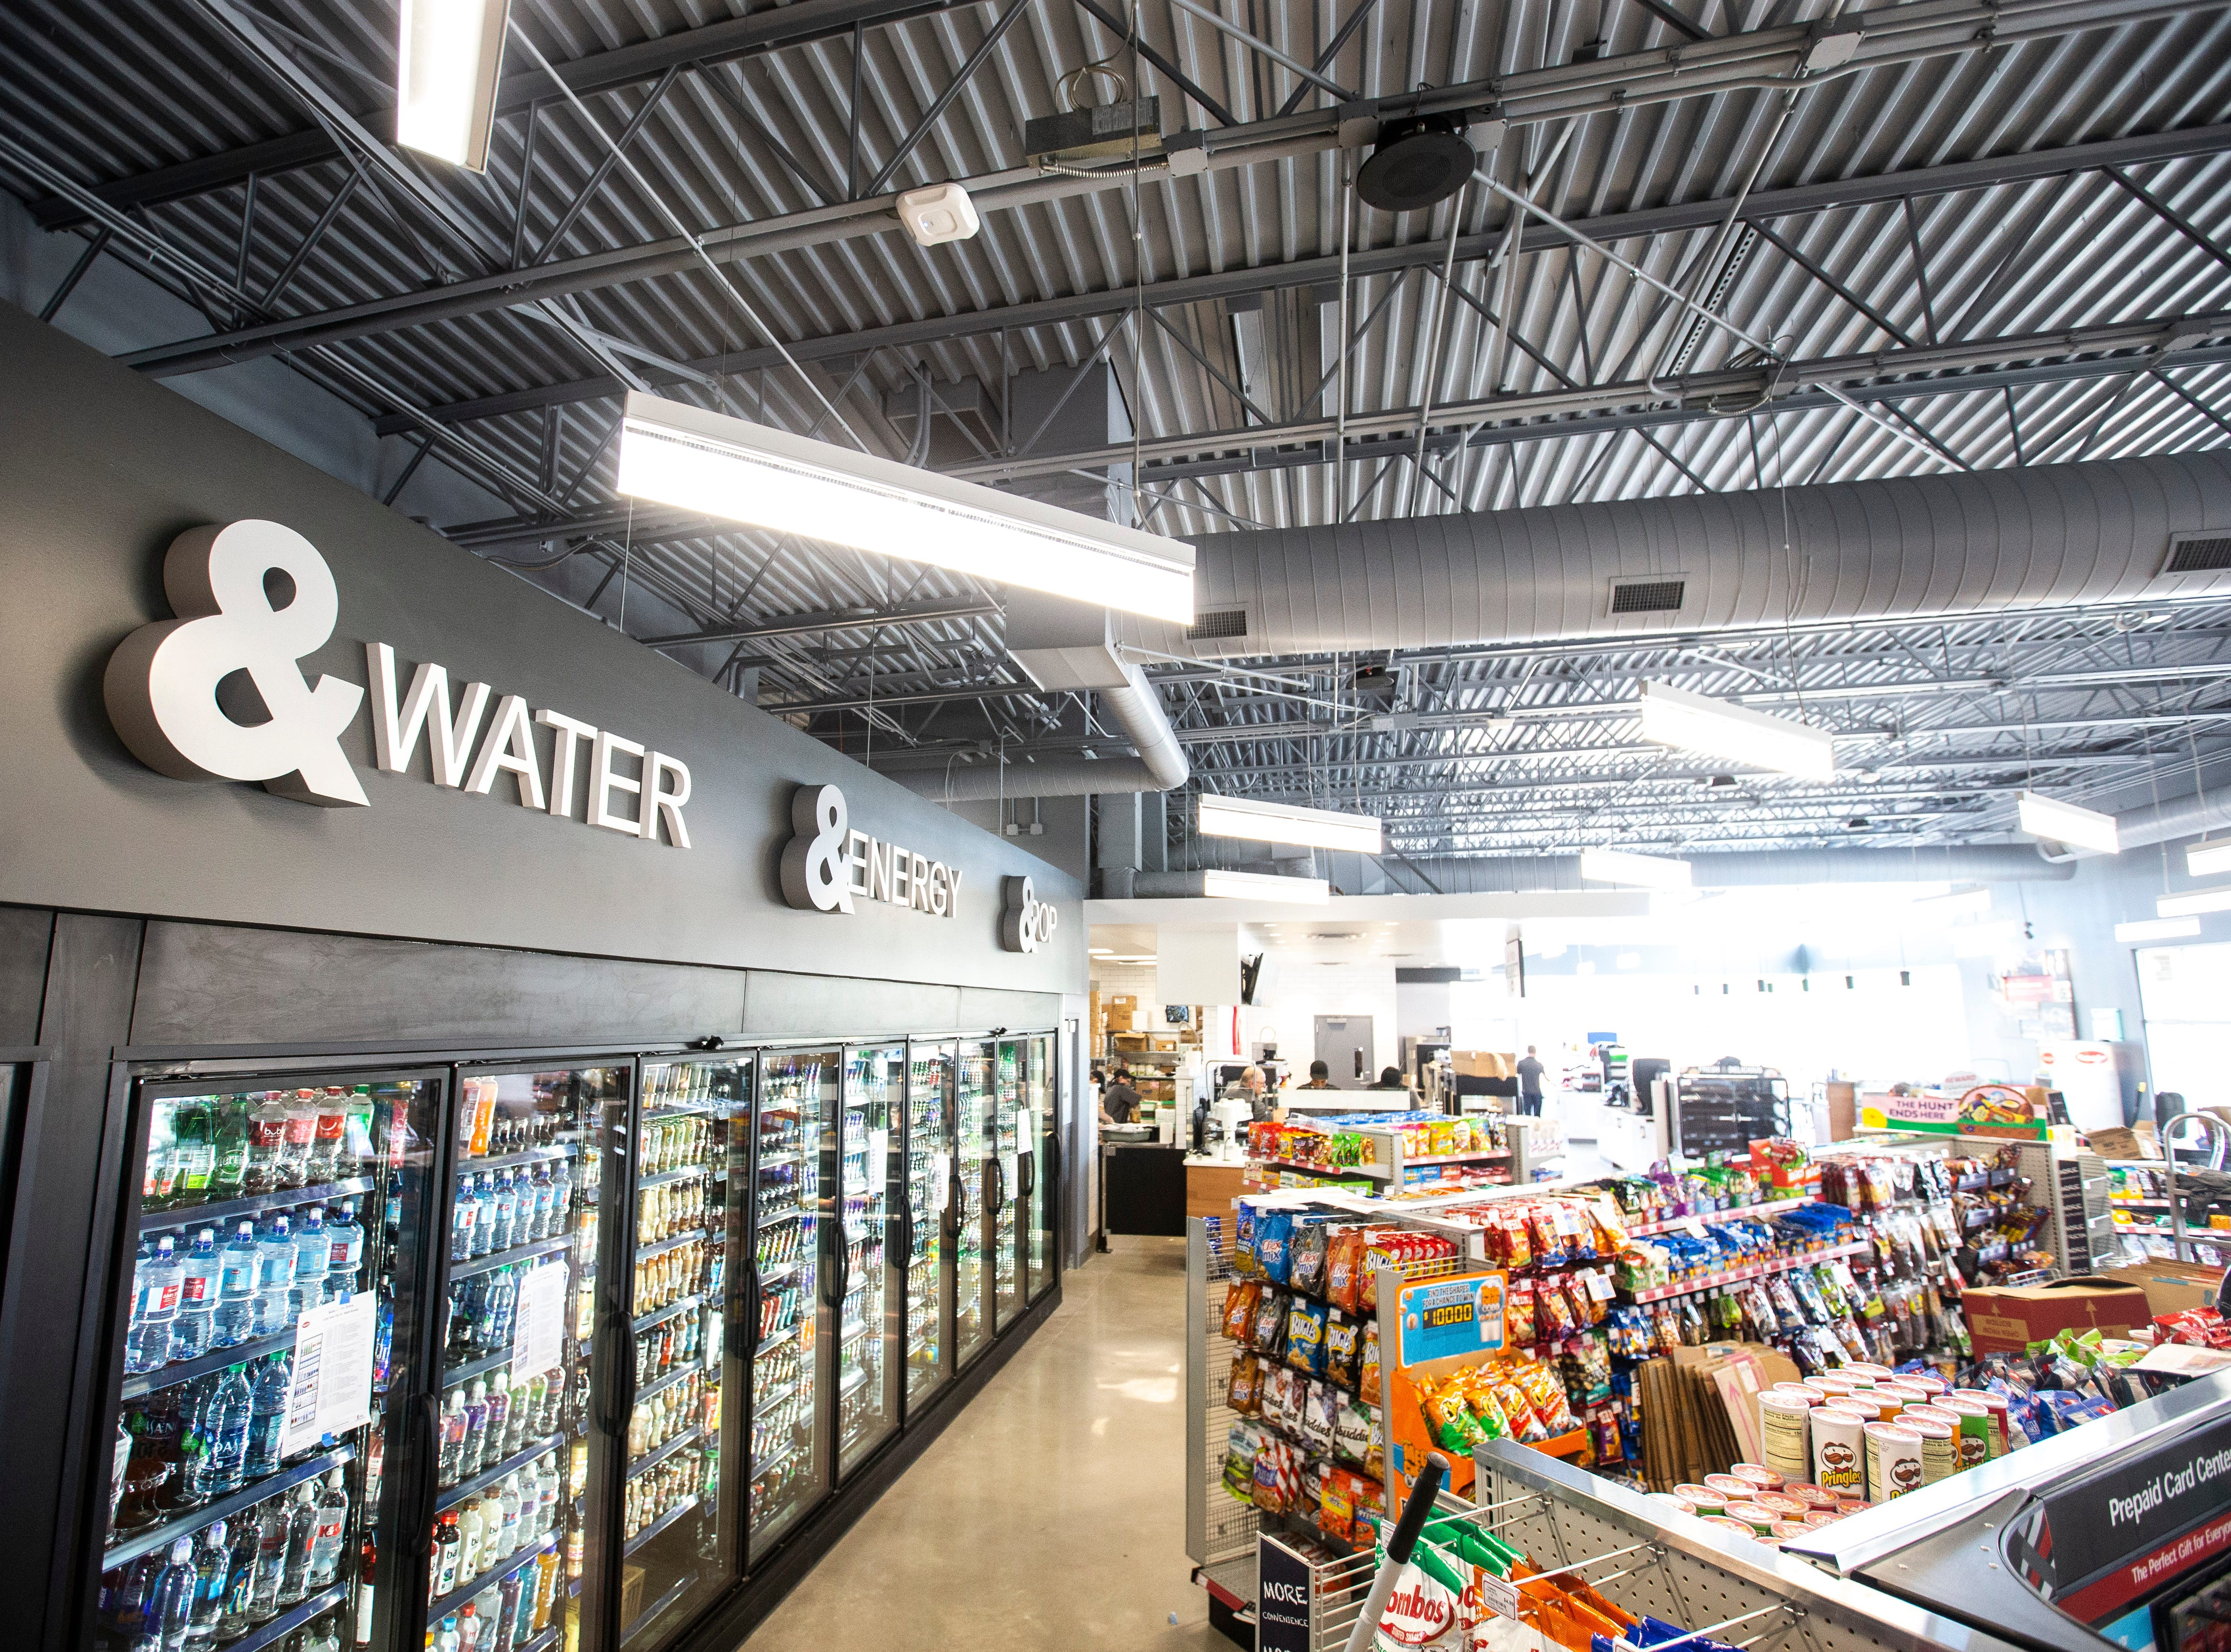 Construction nears competition as items get stocked inside, Tuesday, April 23, 2019, at a new Kum & Go location on the corner of Muscatine and First Avenues on the east side of Iowa City, Iowa.